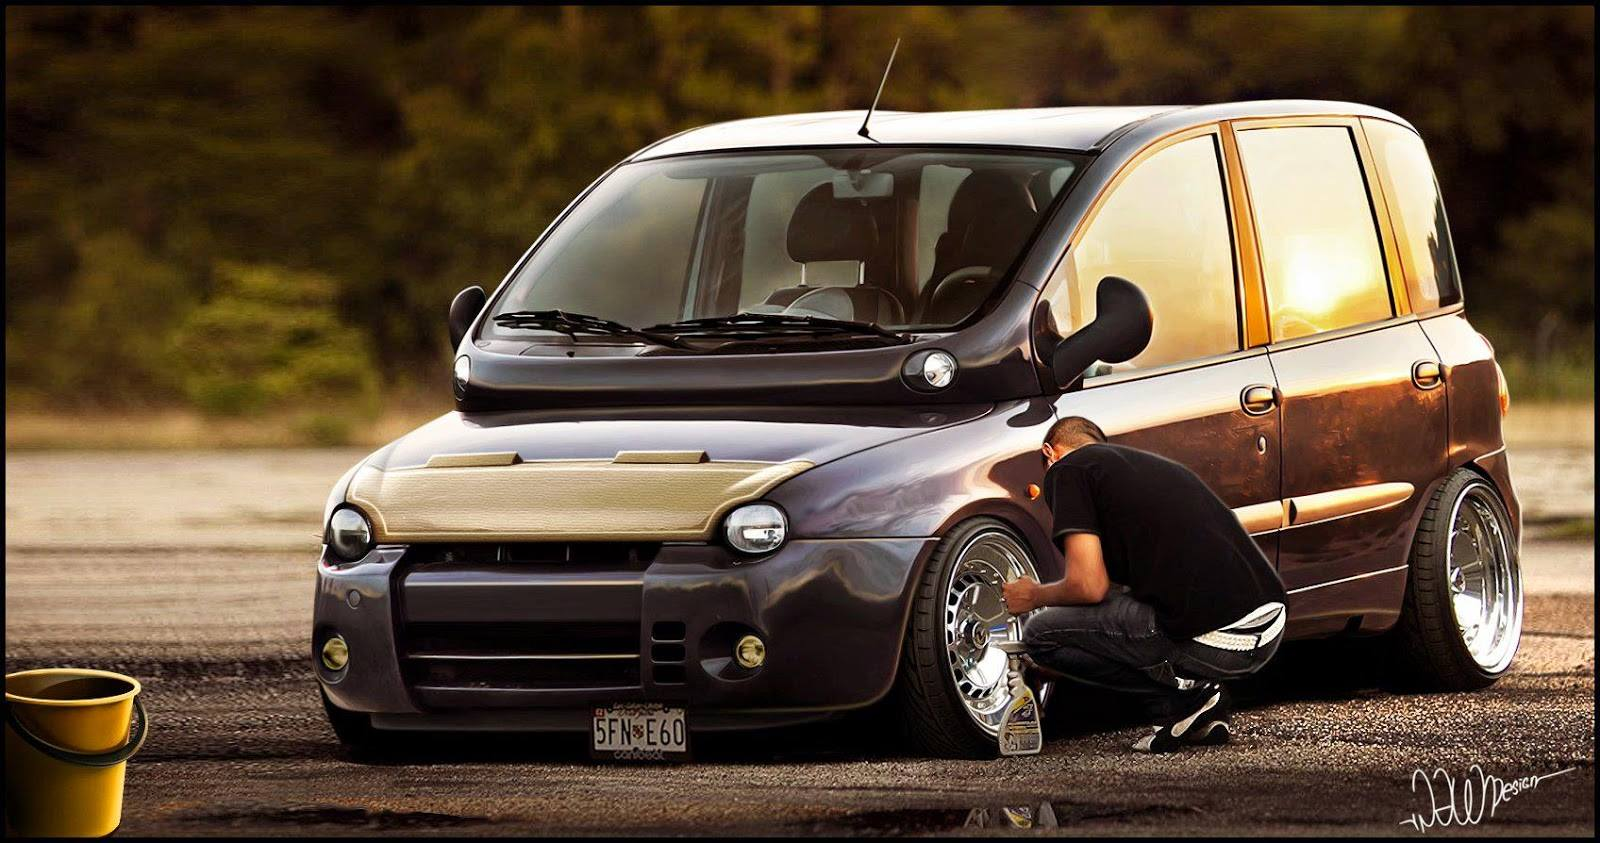 When You Have Ugly Car As F Ck But Stance Is Life